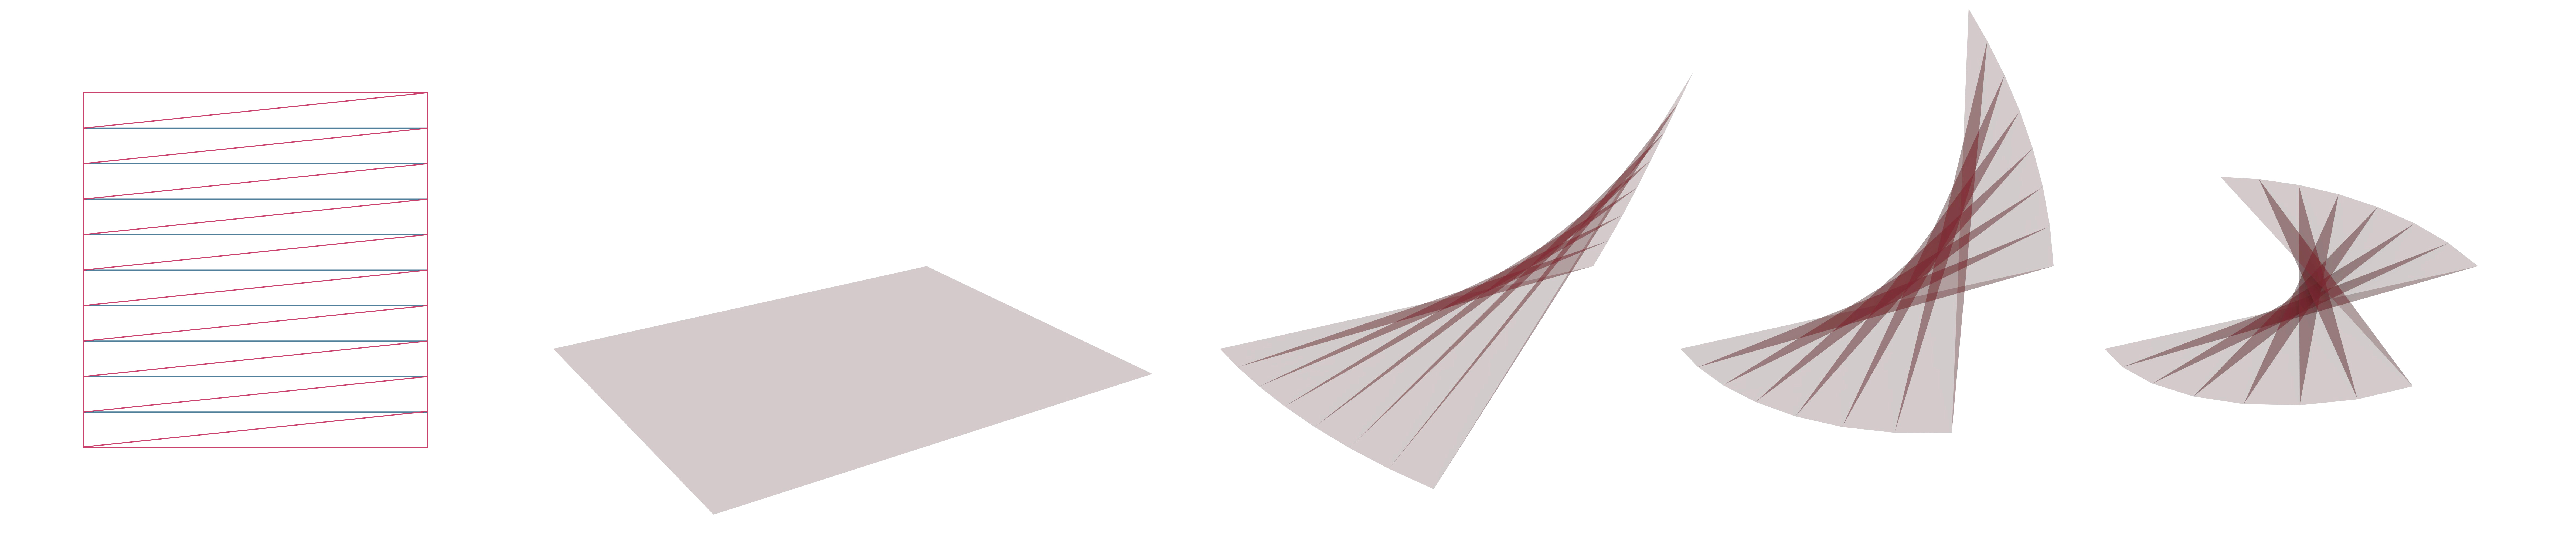 Folding Adds Structural Stiffness To A Surface And Can Be Potential Construction System For Large Span Structures With Complex Geometry